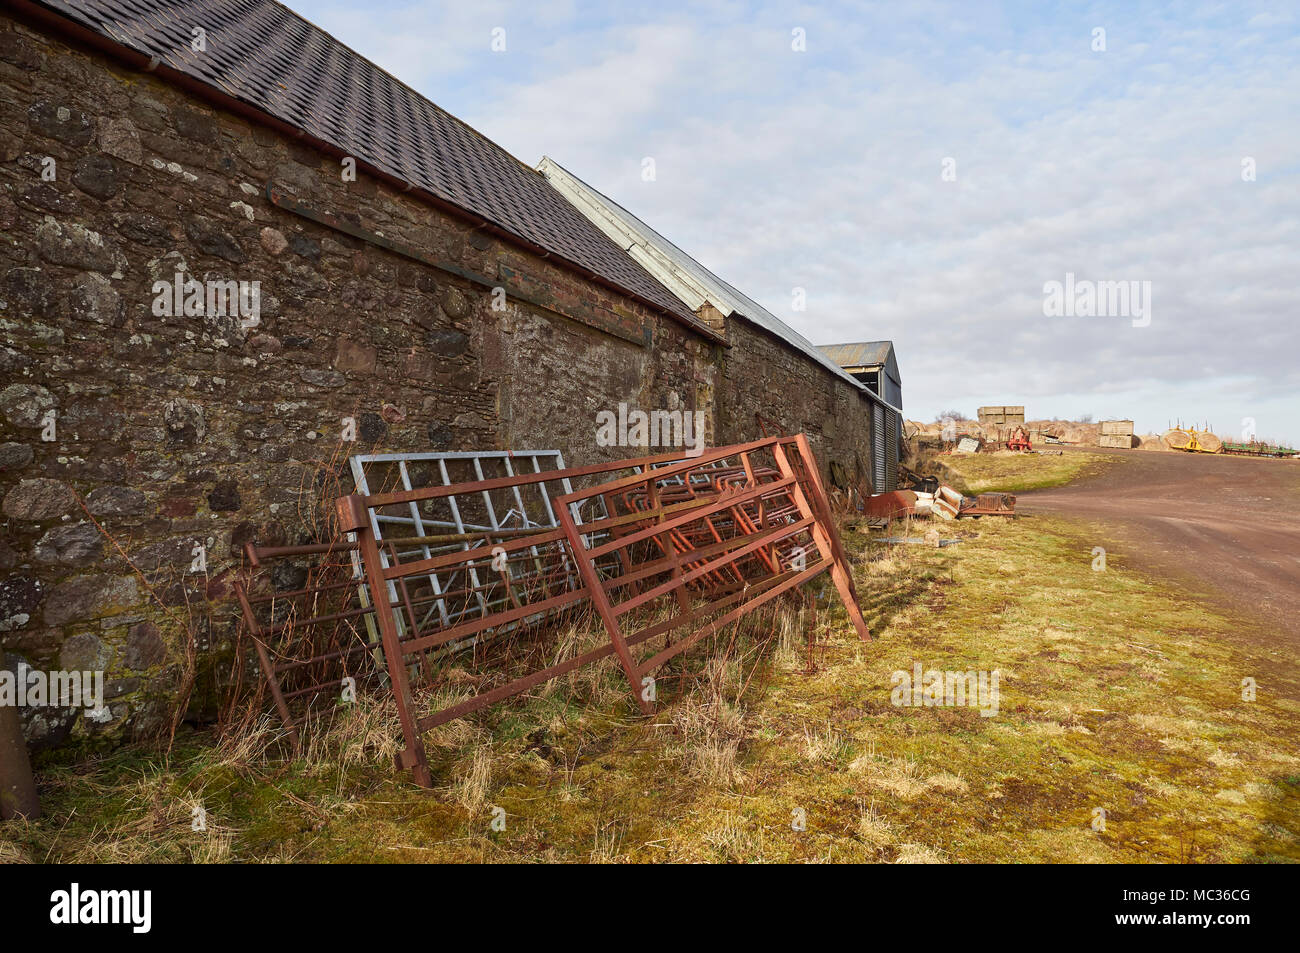 inside barn background. old metal farm gates stacked against a wall of stone built outbuilding with other inside barn background